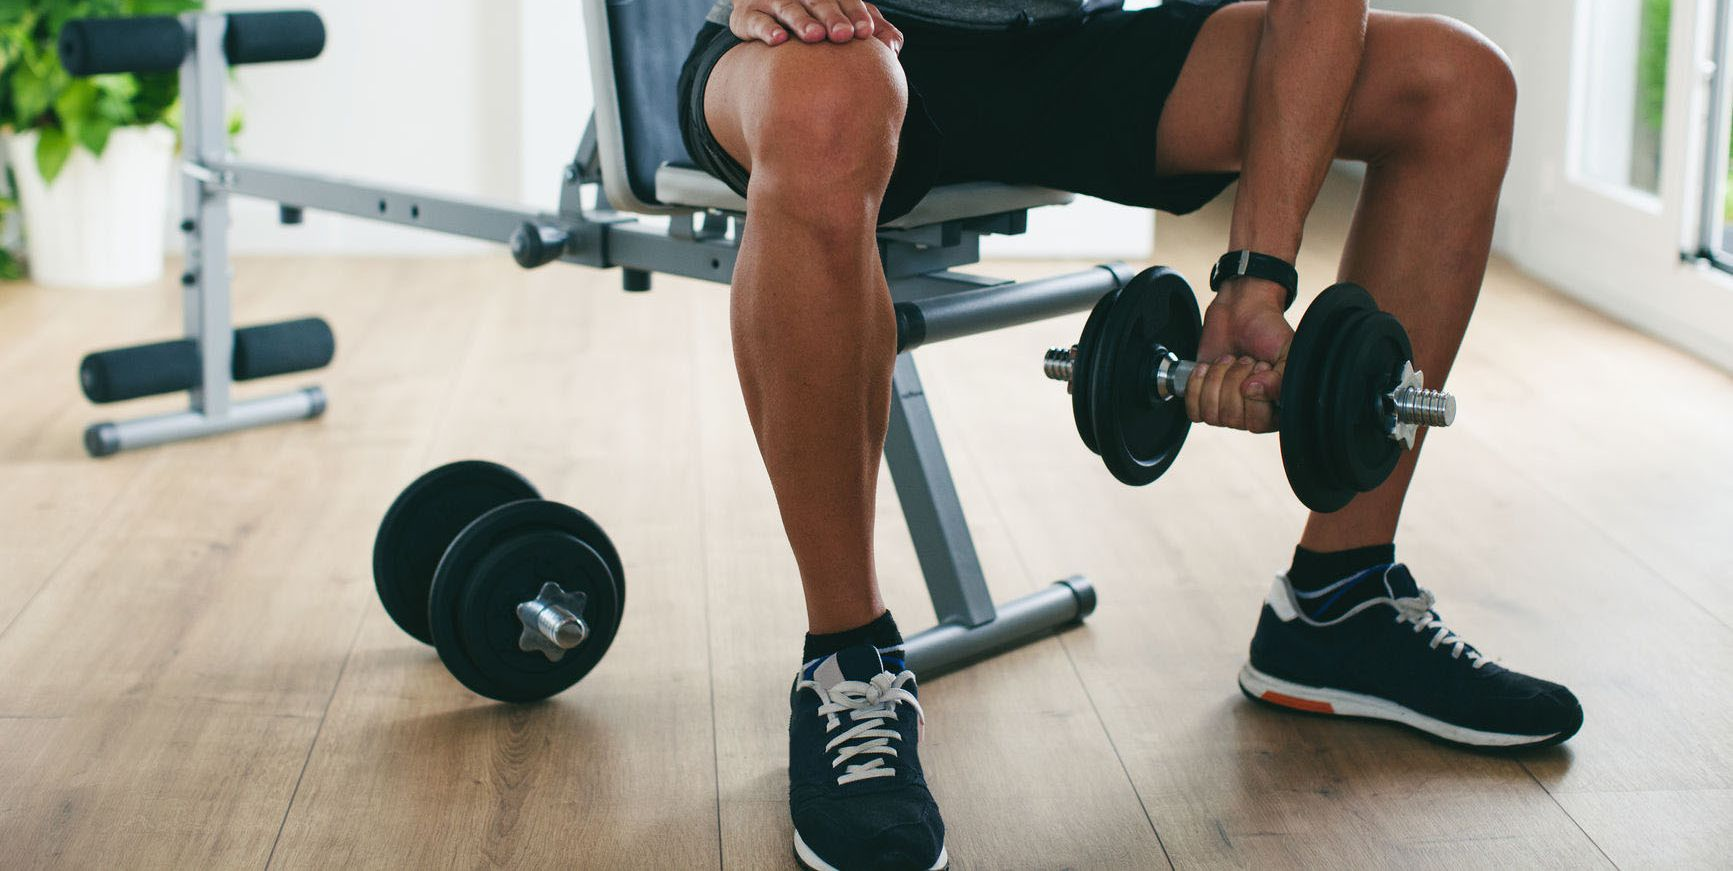 Closeup Of A Man Lifting Weights Sitting On A Workout Bench At Home.